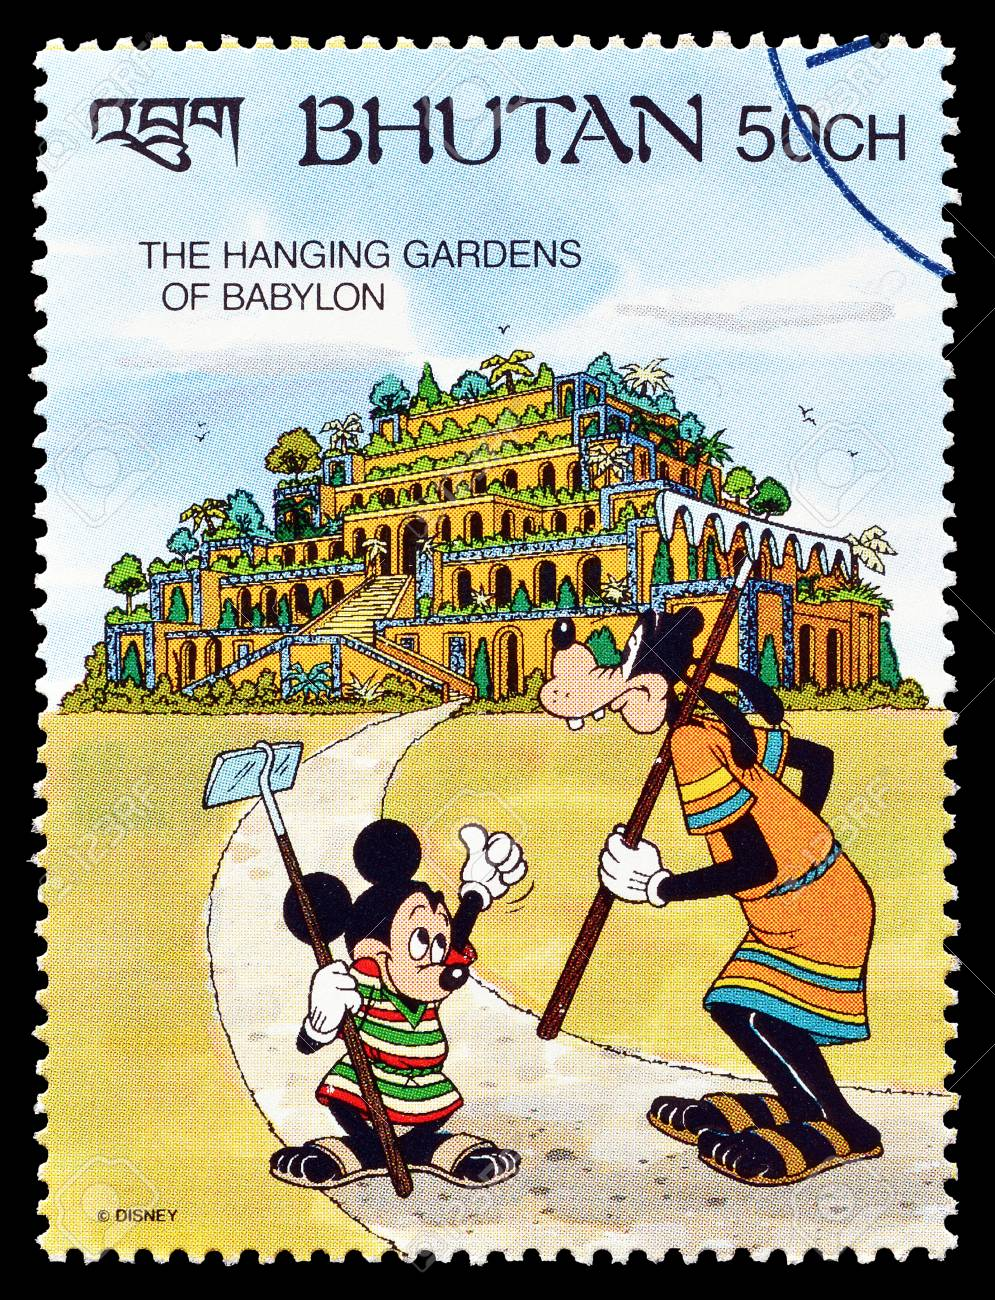 Cancelled Postage Stamp Printed By Bhutan That Shows Mickey Mouse And Goofy Visiting Hanging Gardens